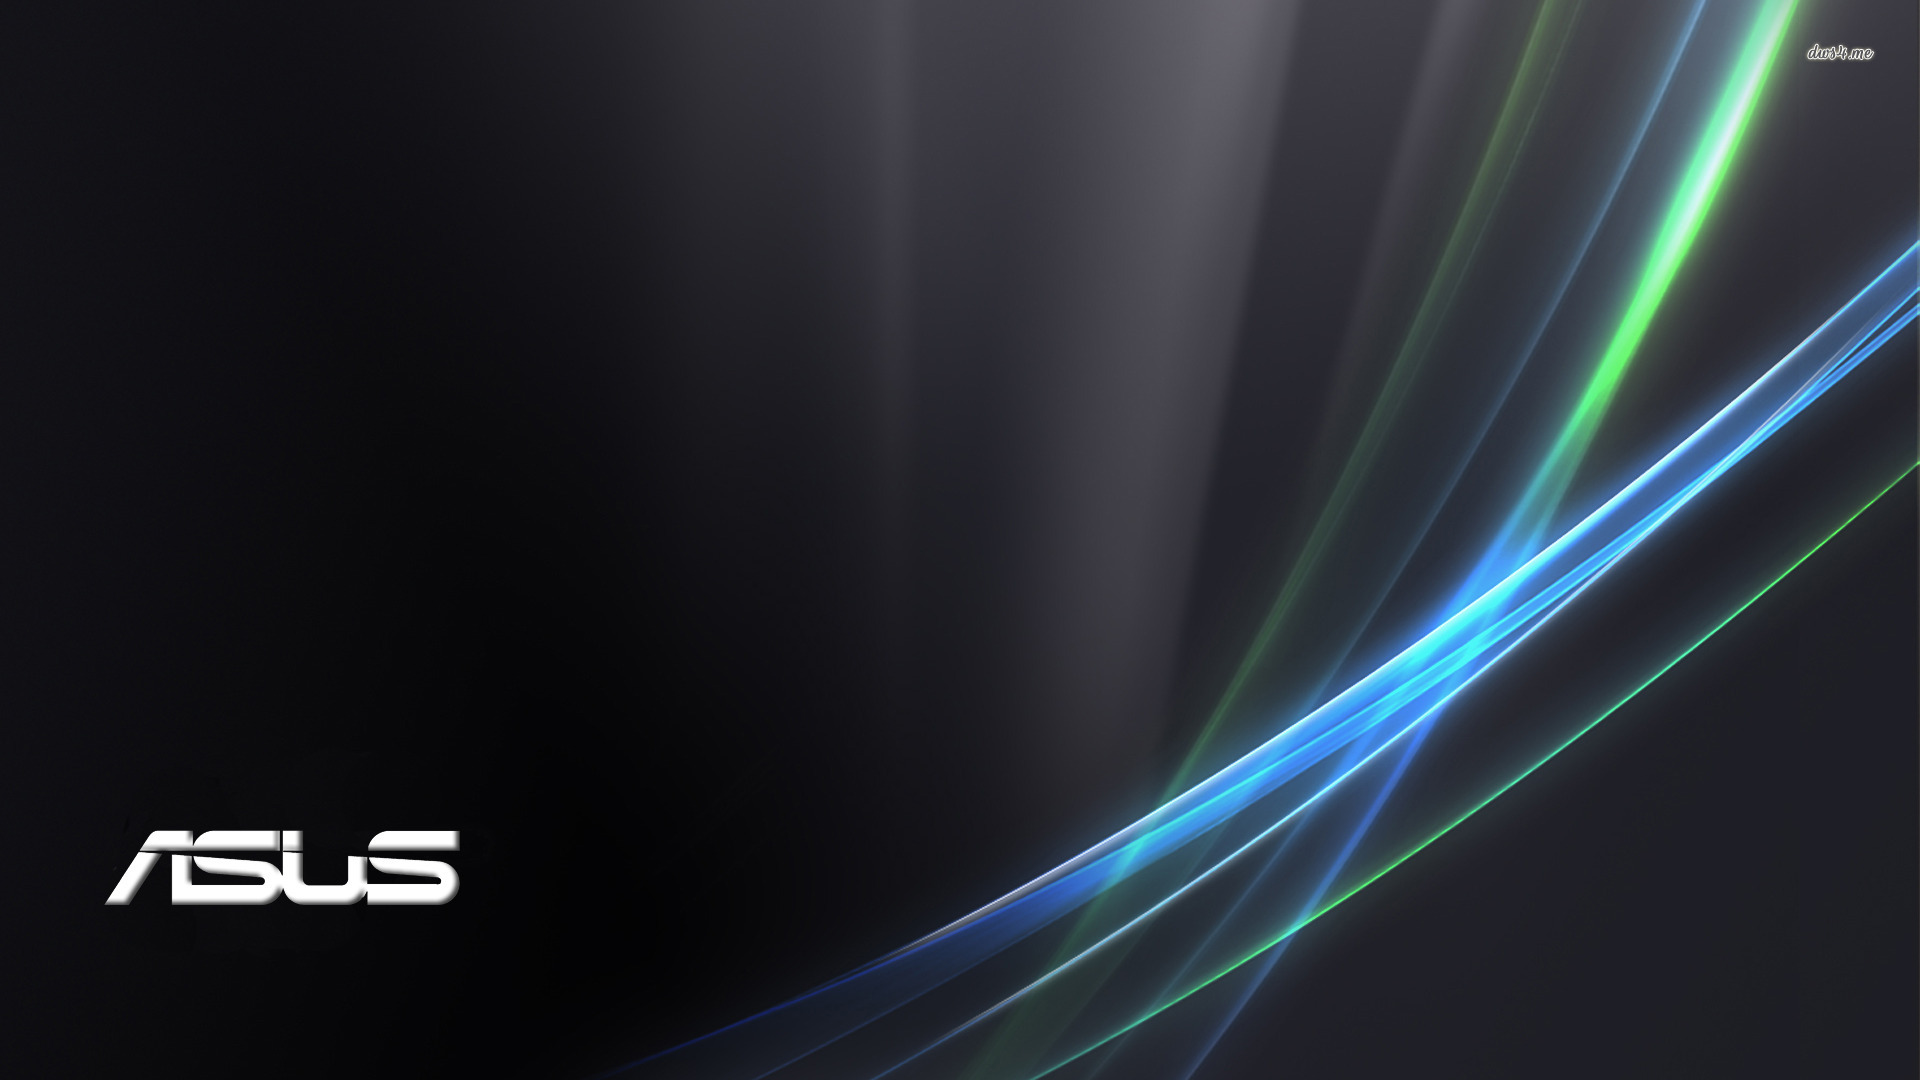 Wallpapers For Asus Laptops